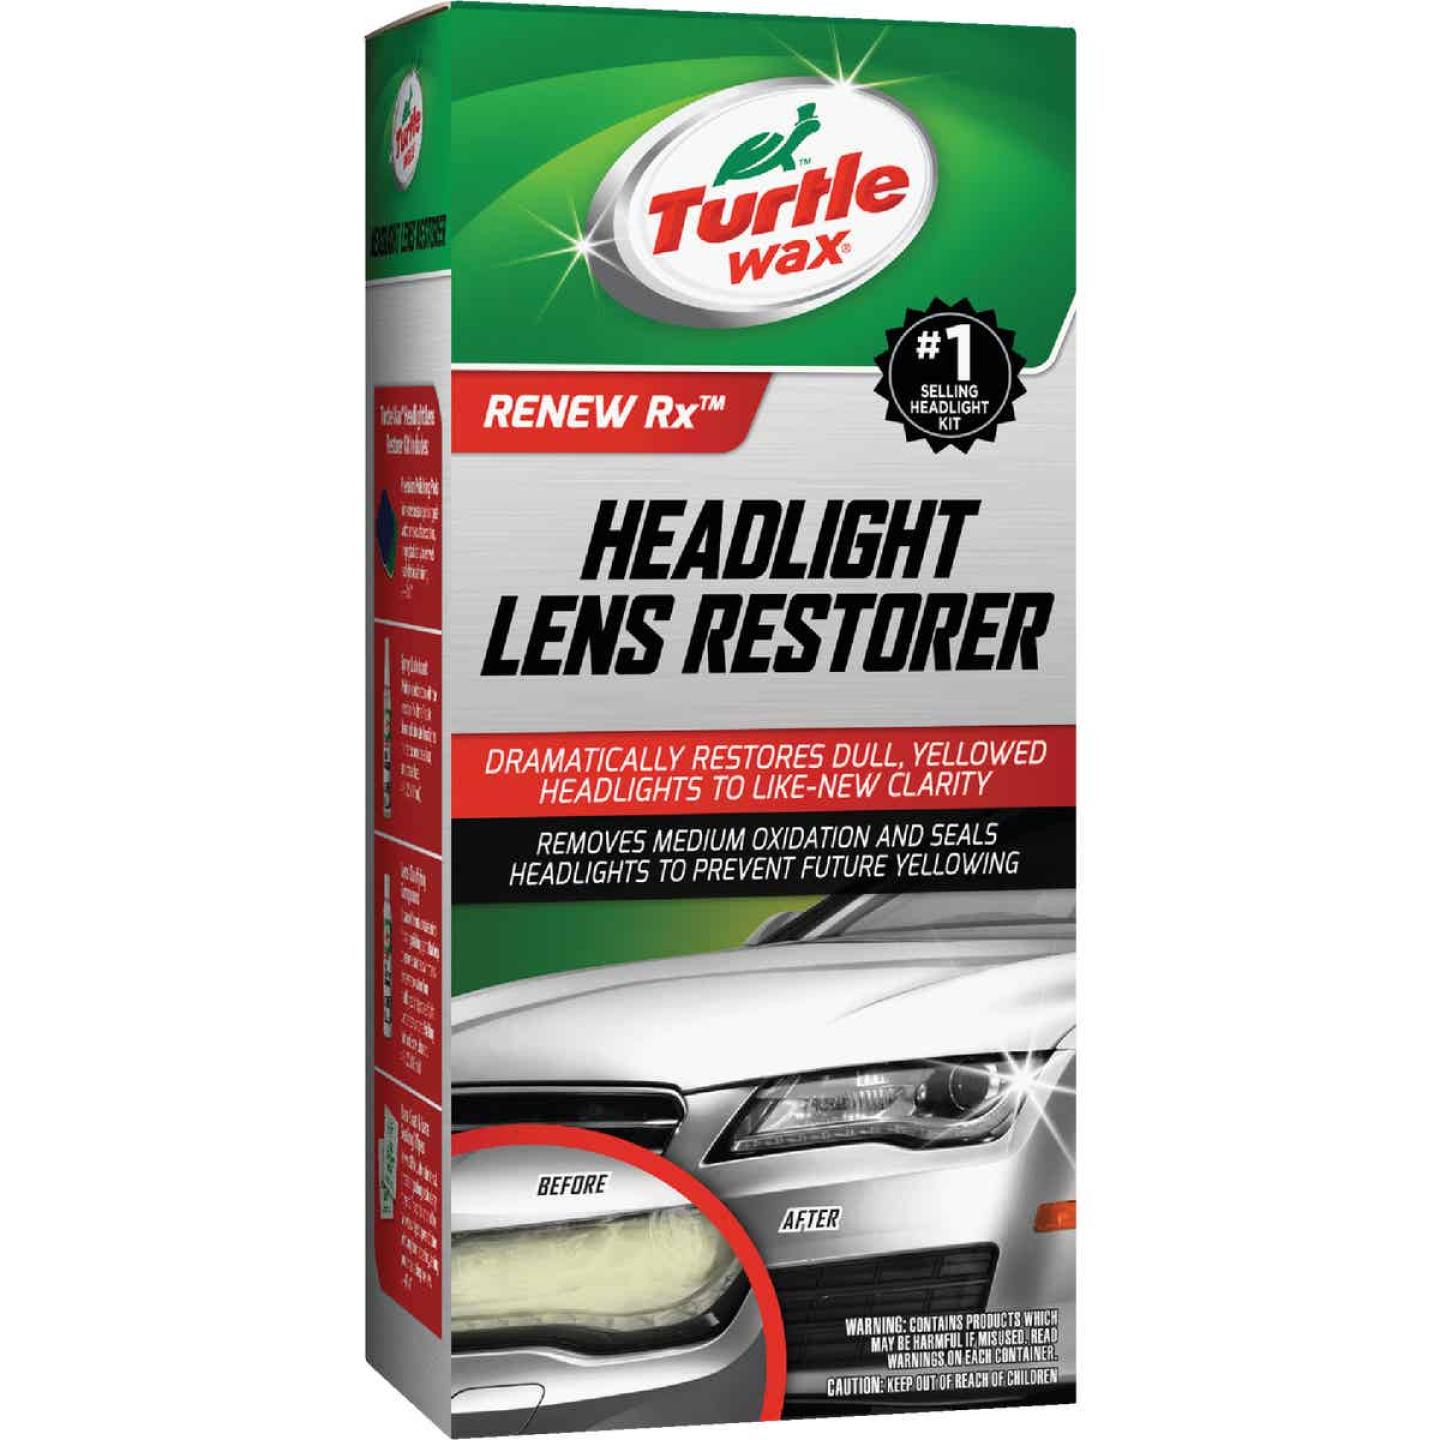 Turtle Wax Headlight Restorer Kit Image 1